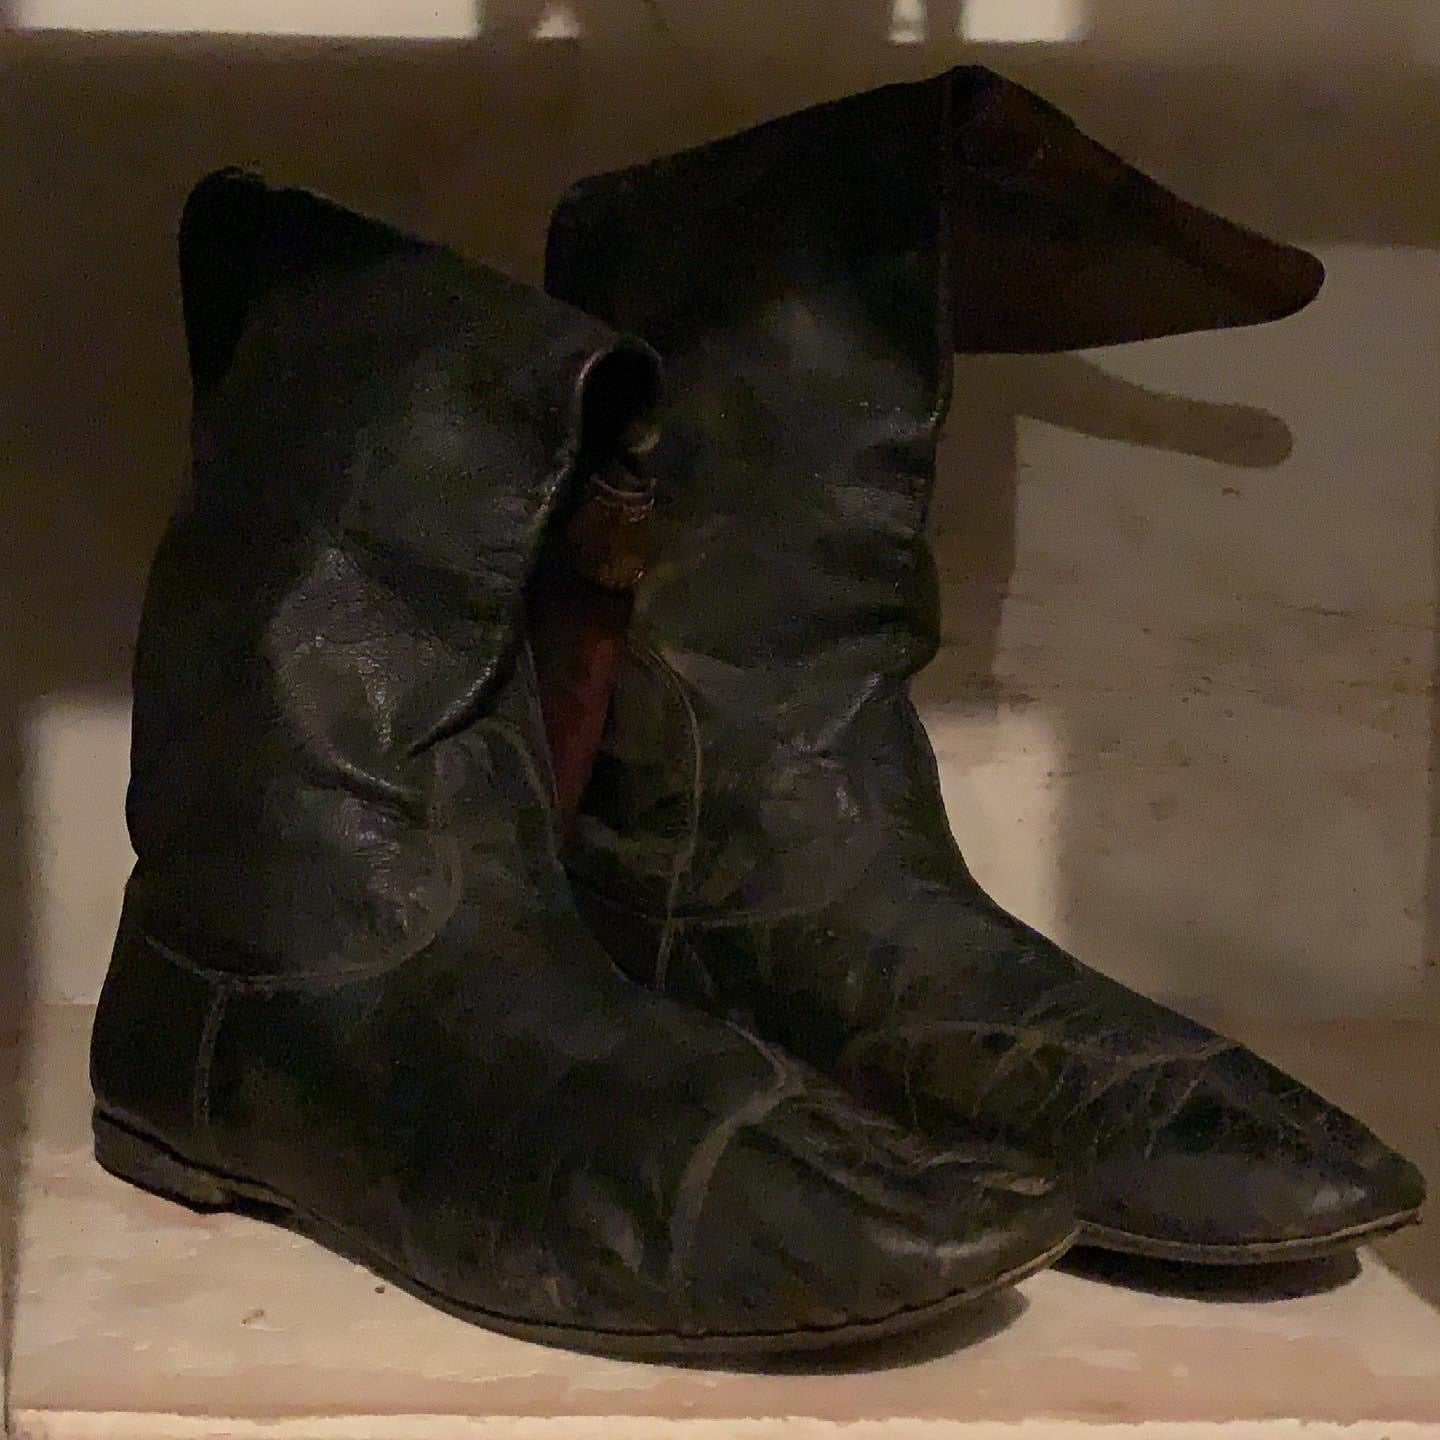 Worn Weathered Boots